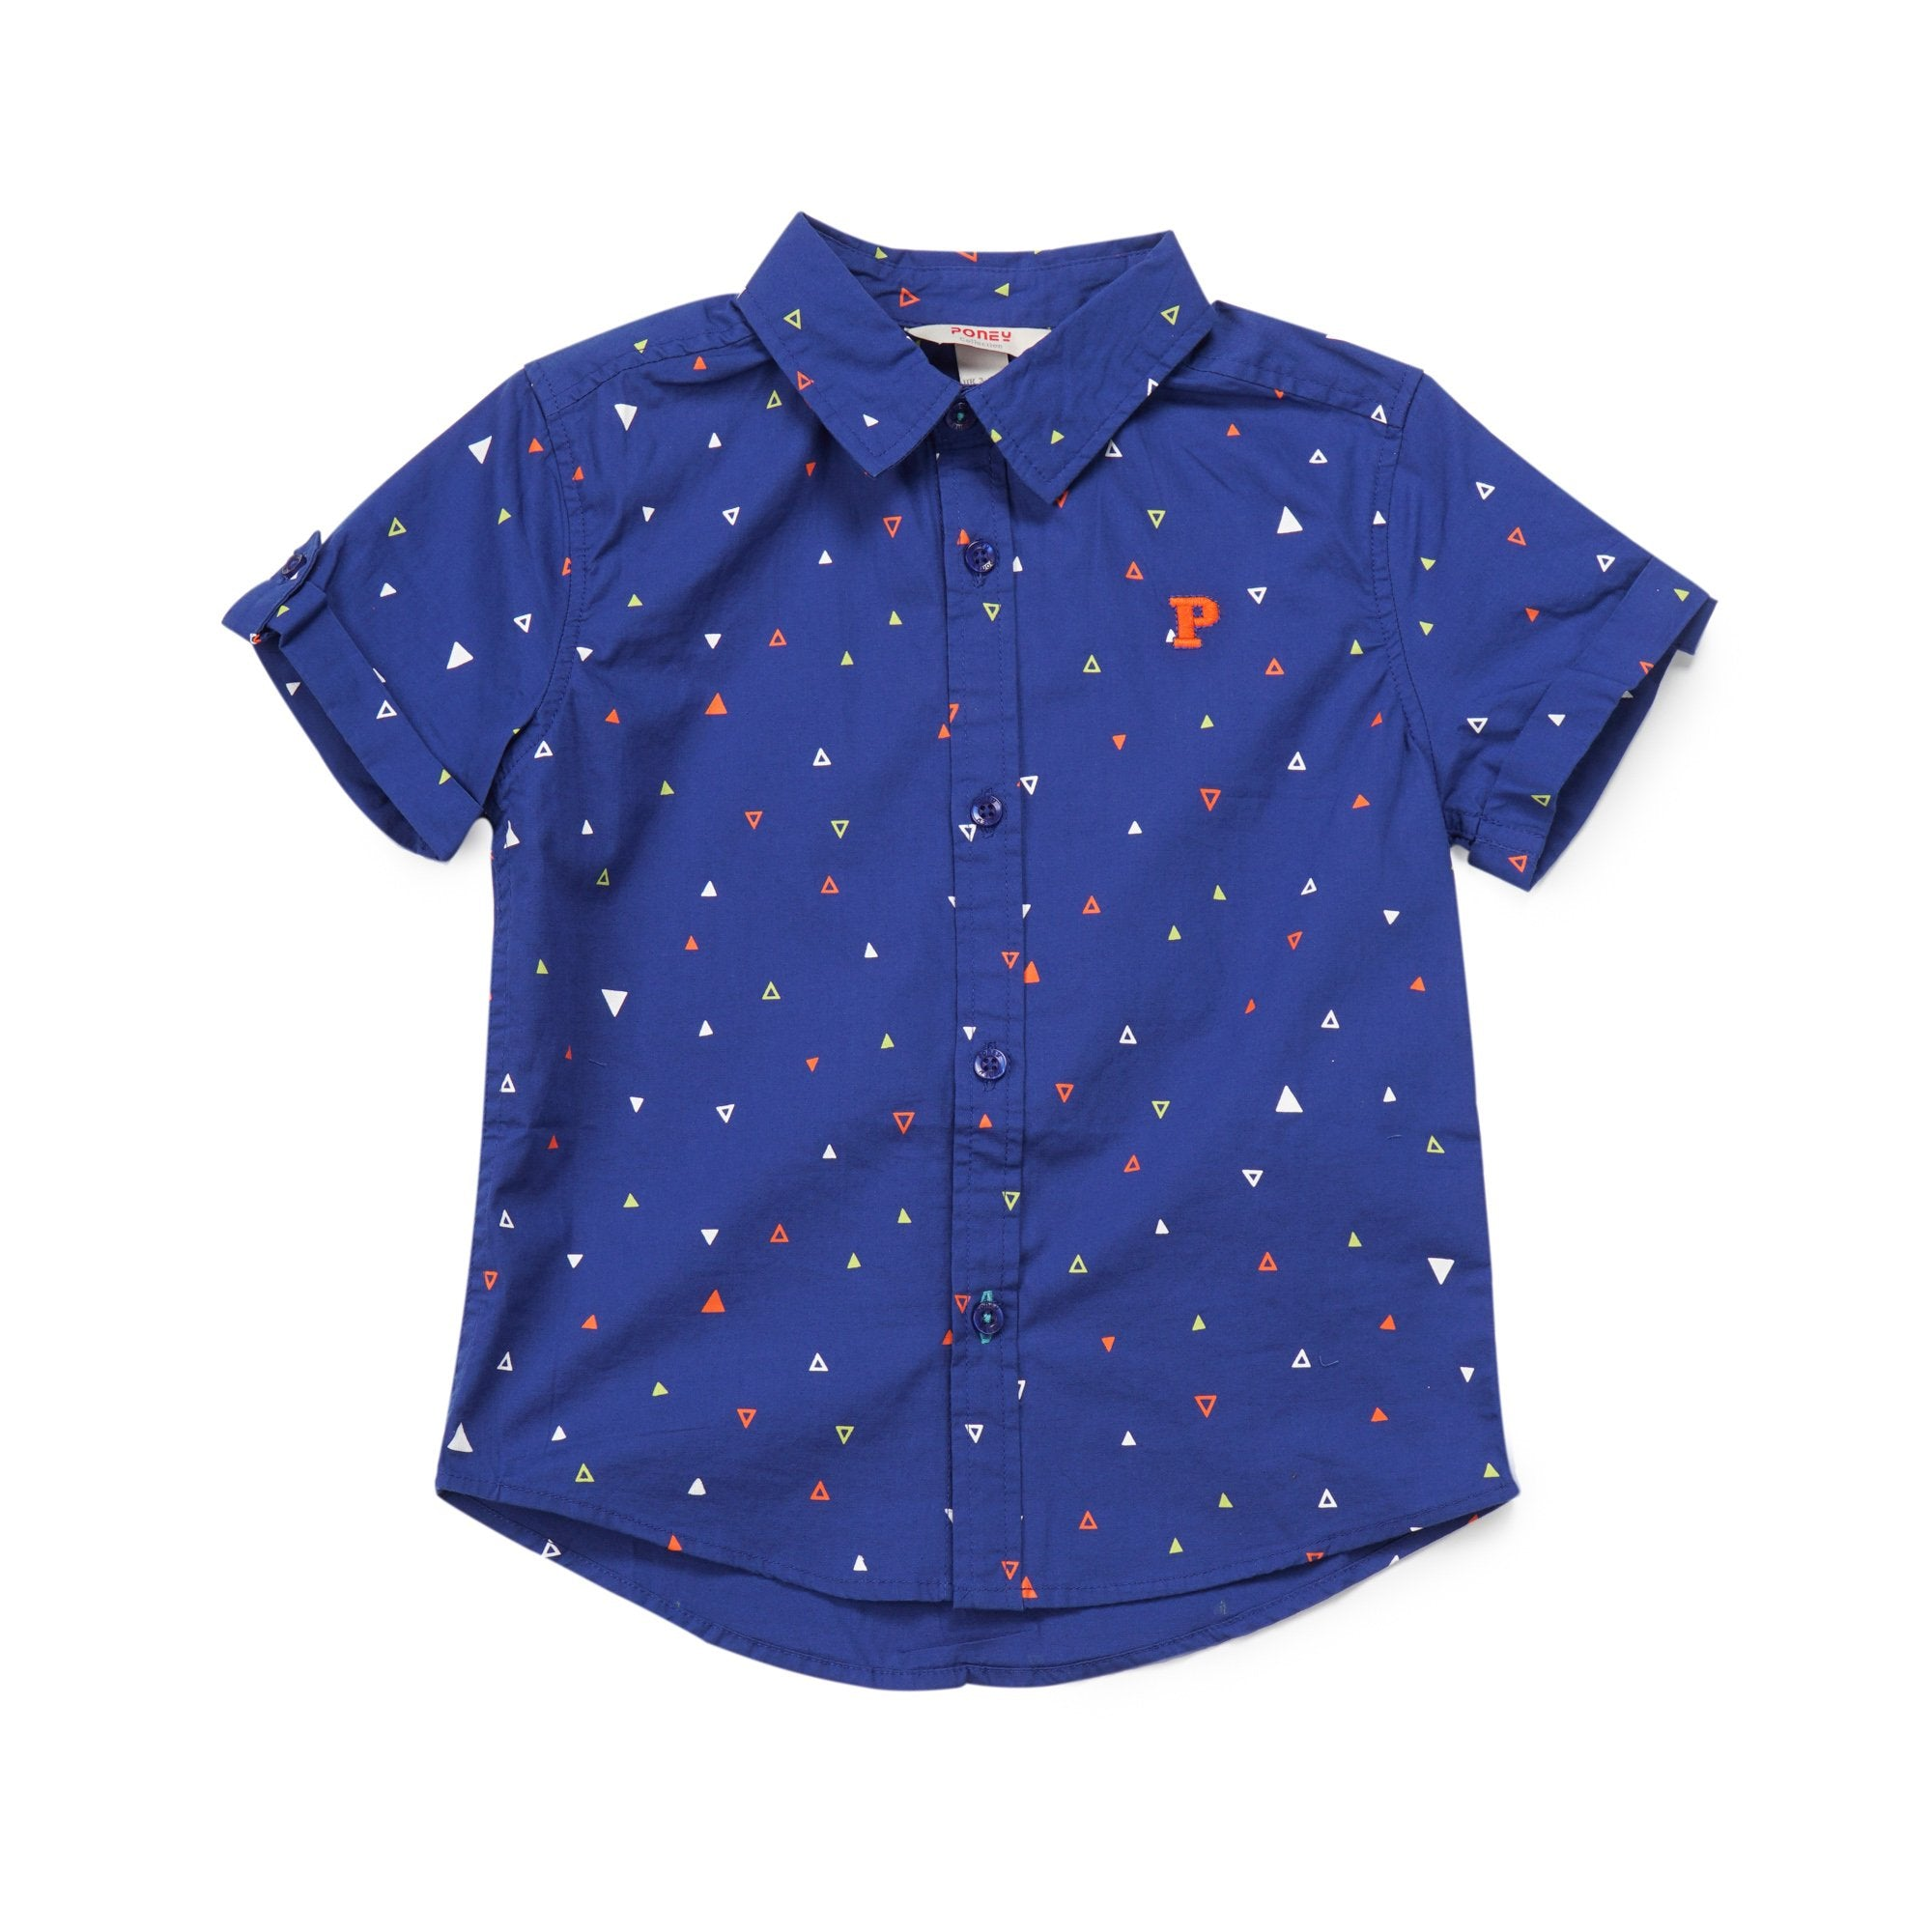 Poney Boys ShortSleeve Shirt 8055 (6mths-12yrs)